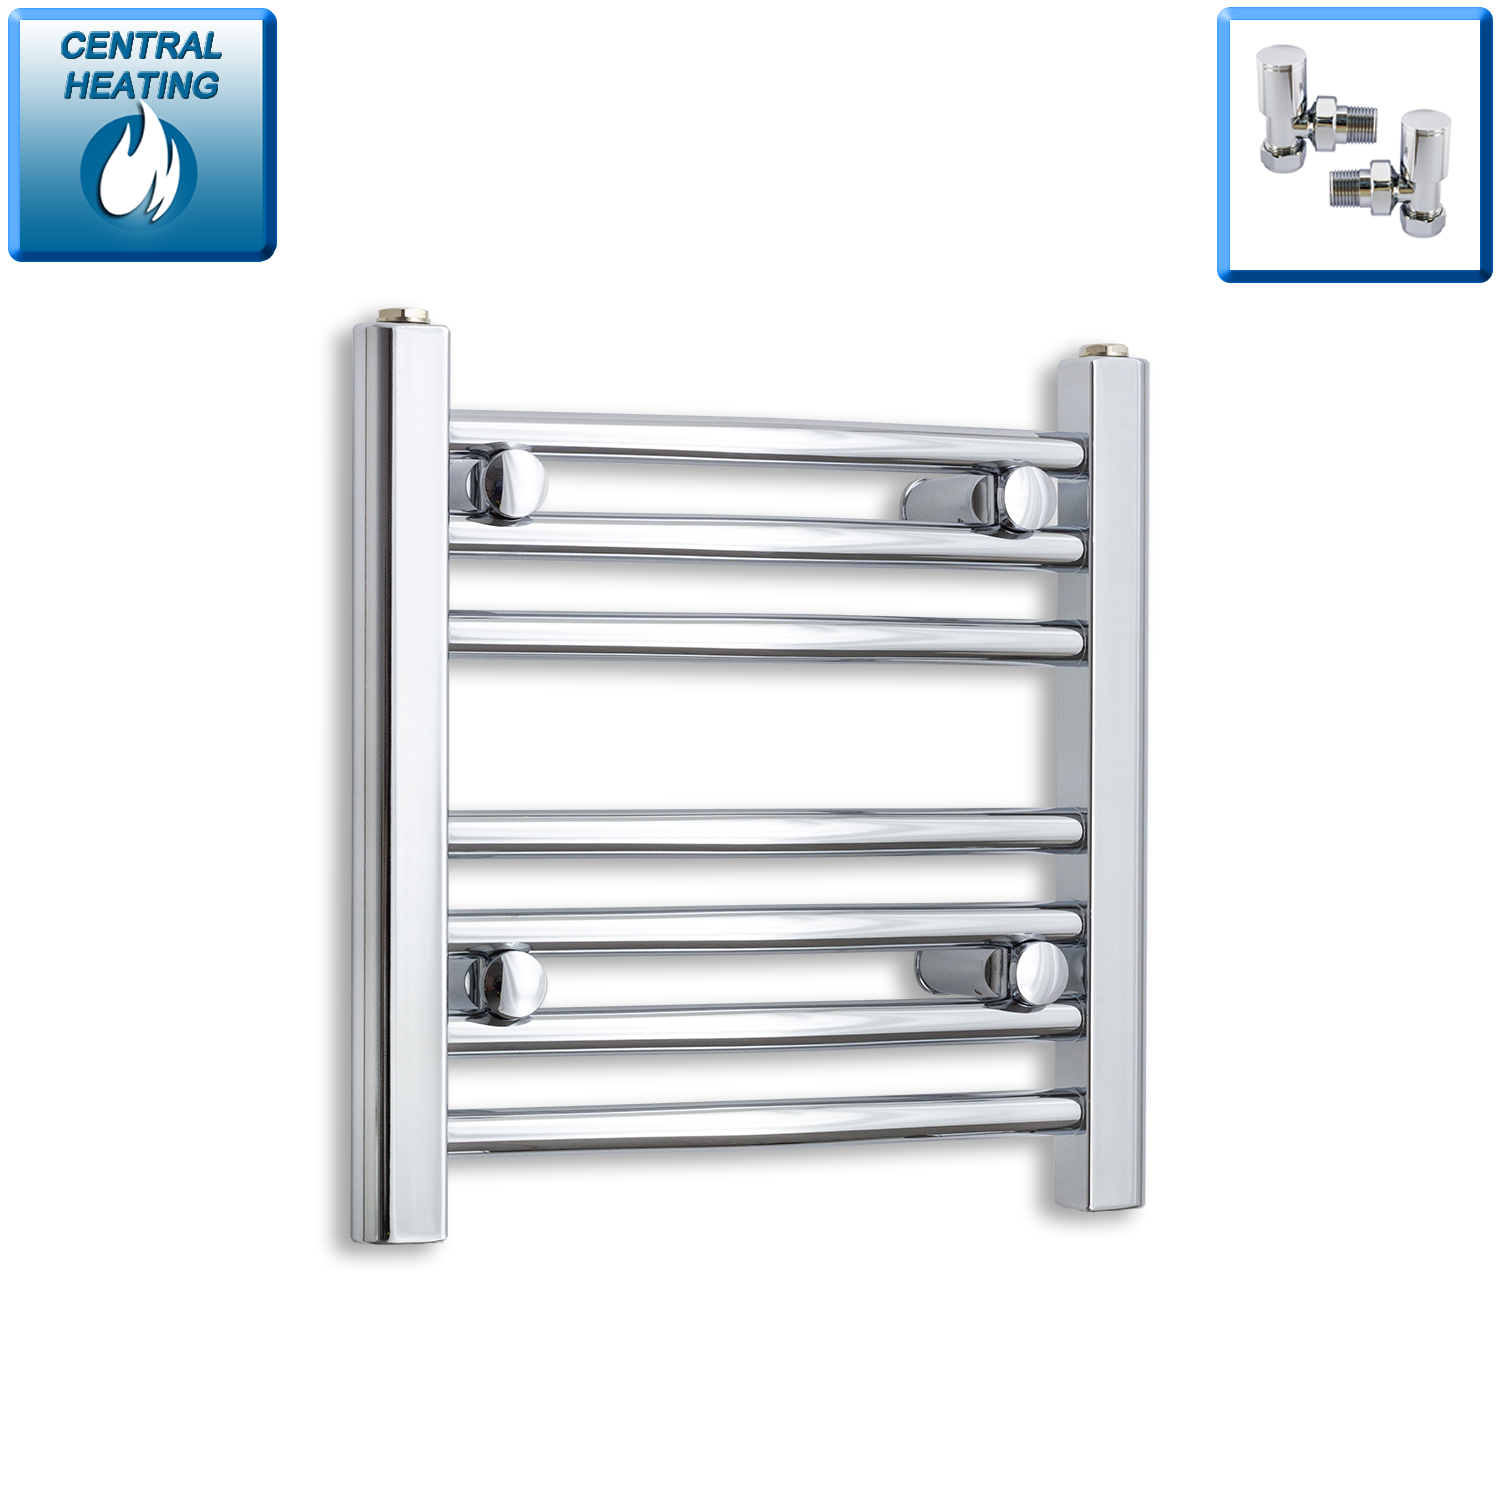 500mm Wide 400mm High Flat Chrome Heated Towel Rail Radiator HTR,With Angled Valve